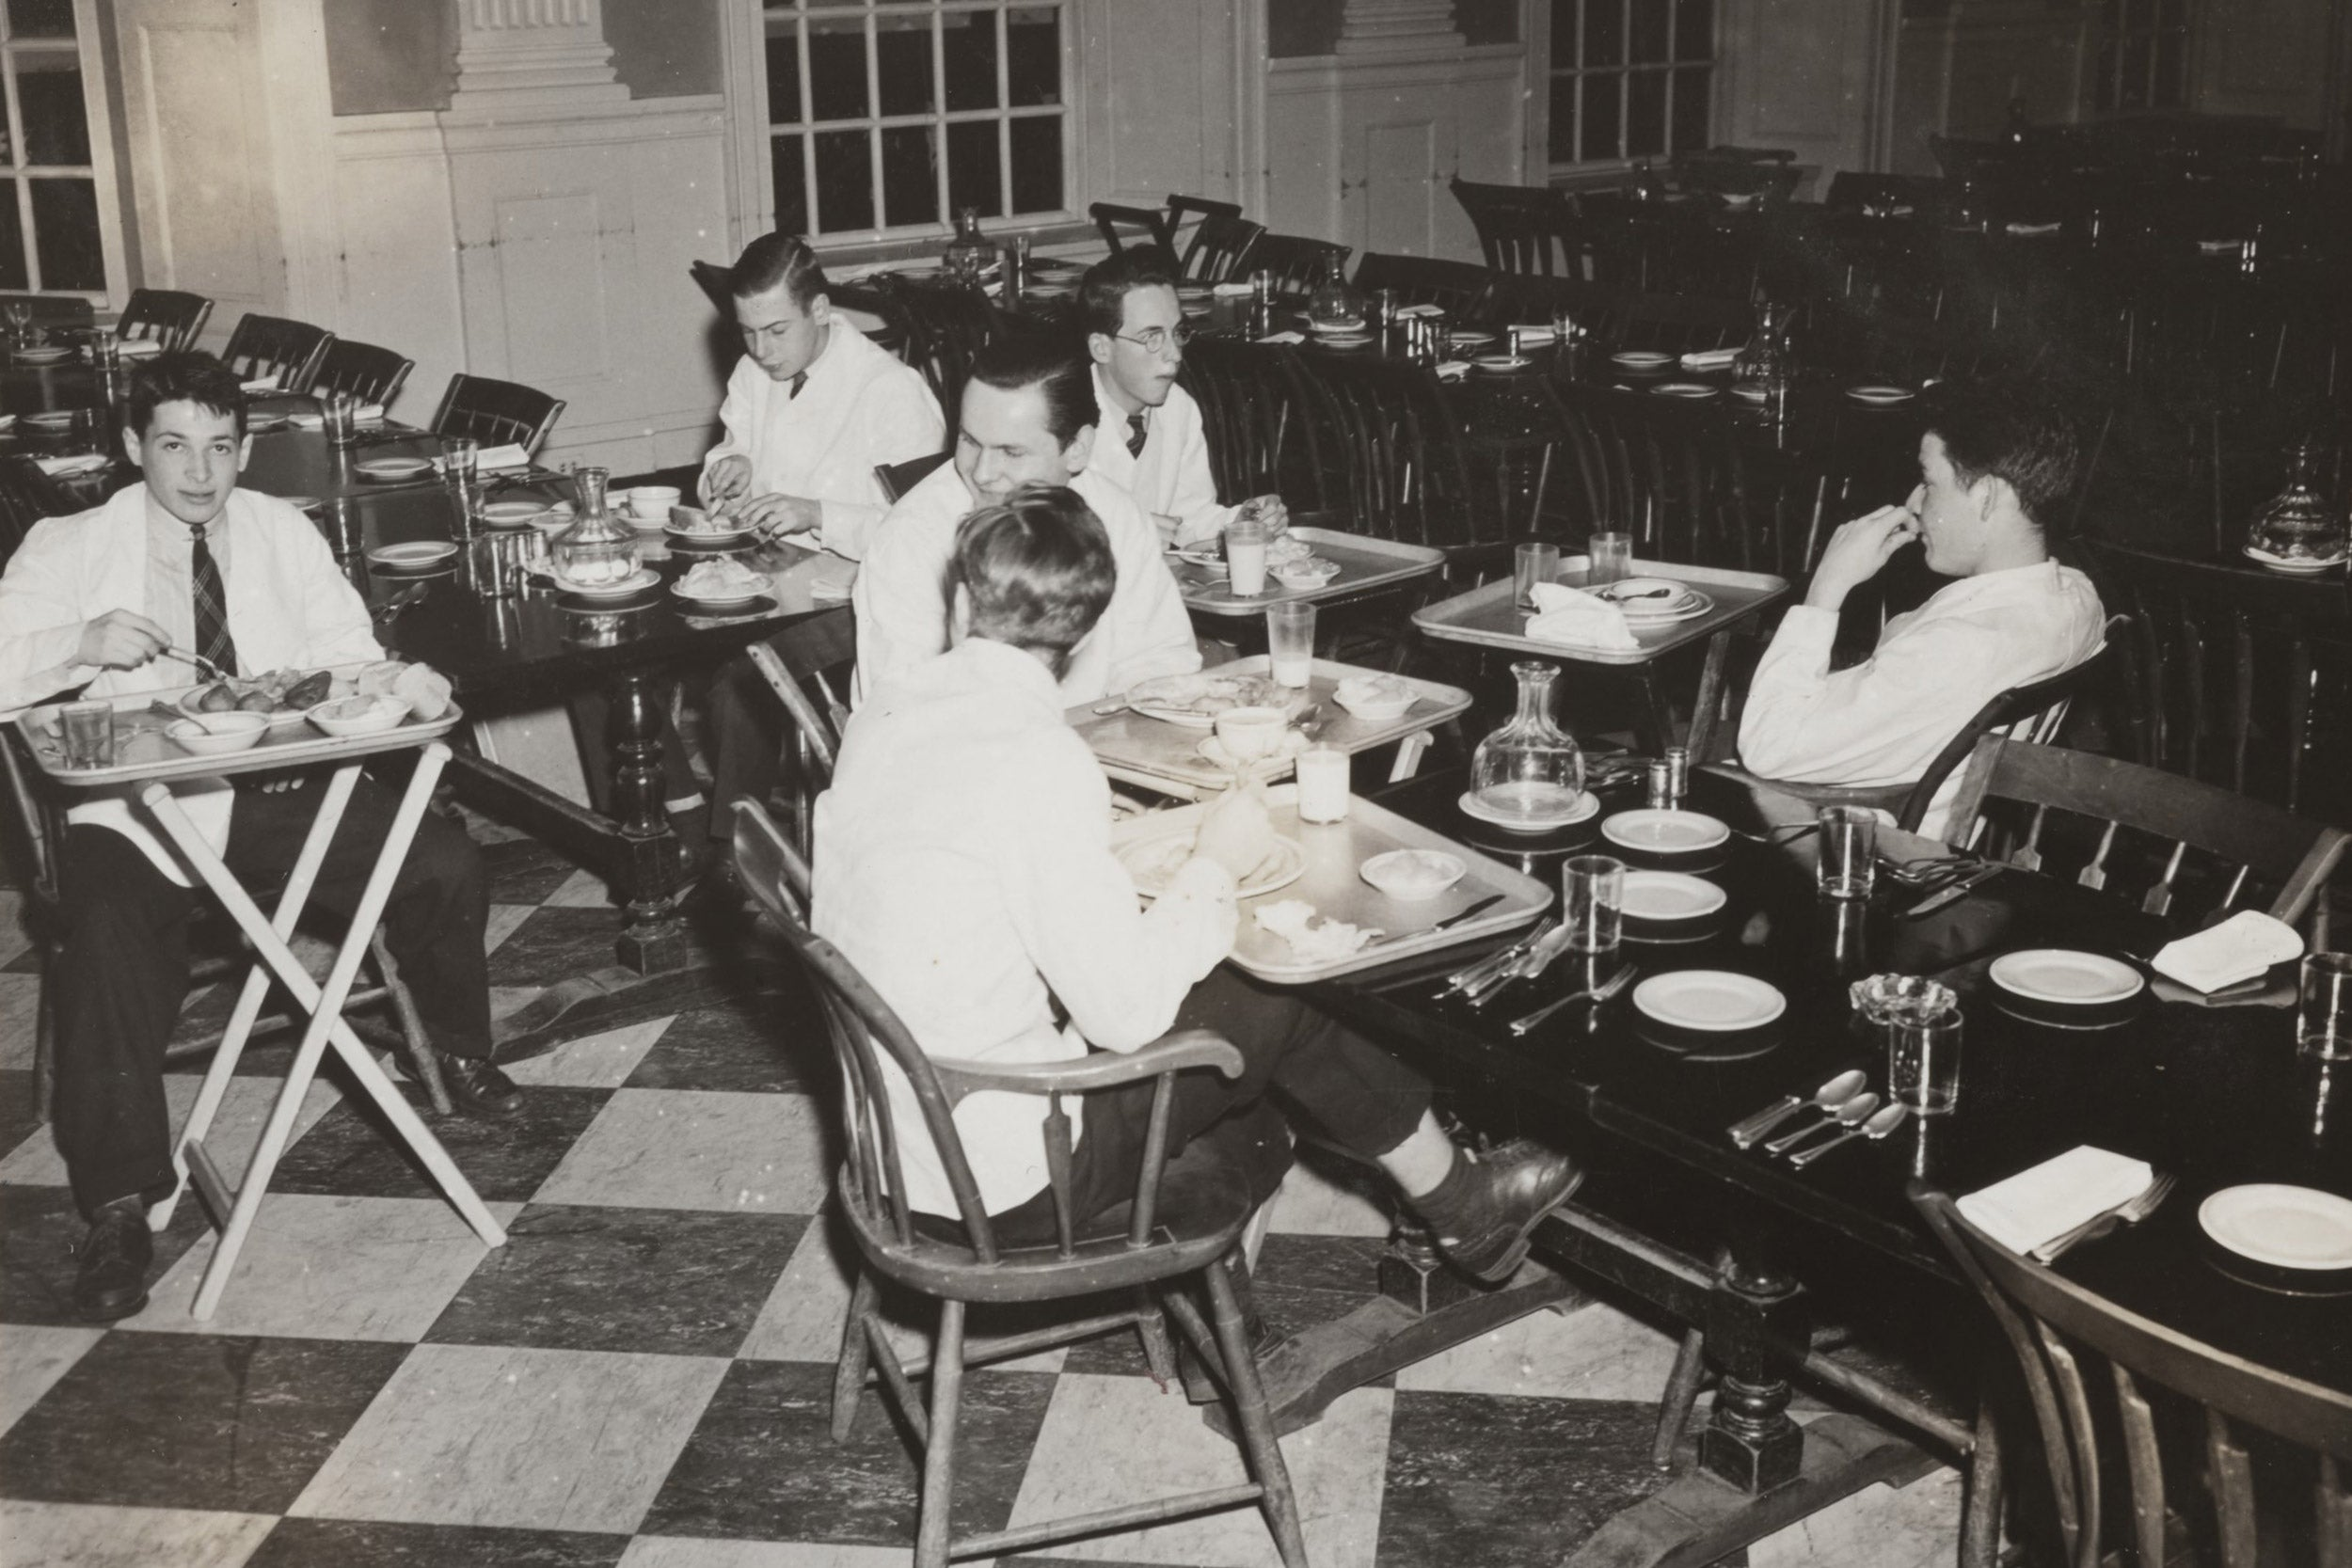 Looking back at dining on campus through the years